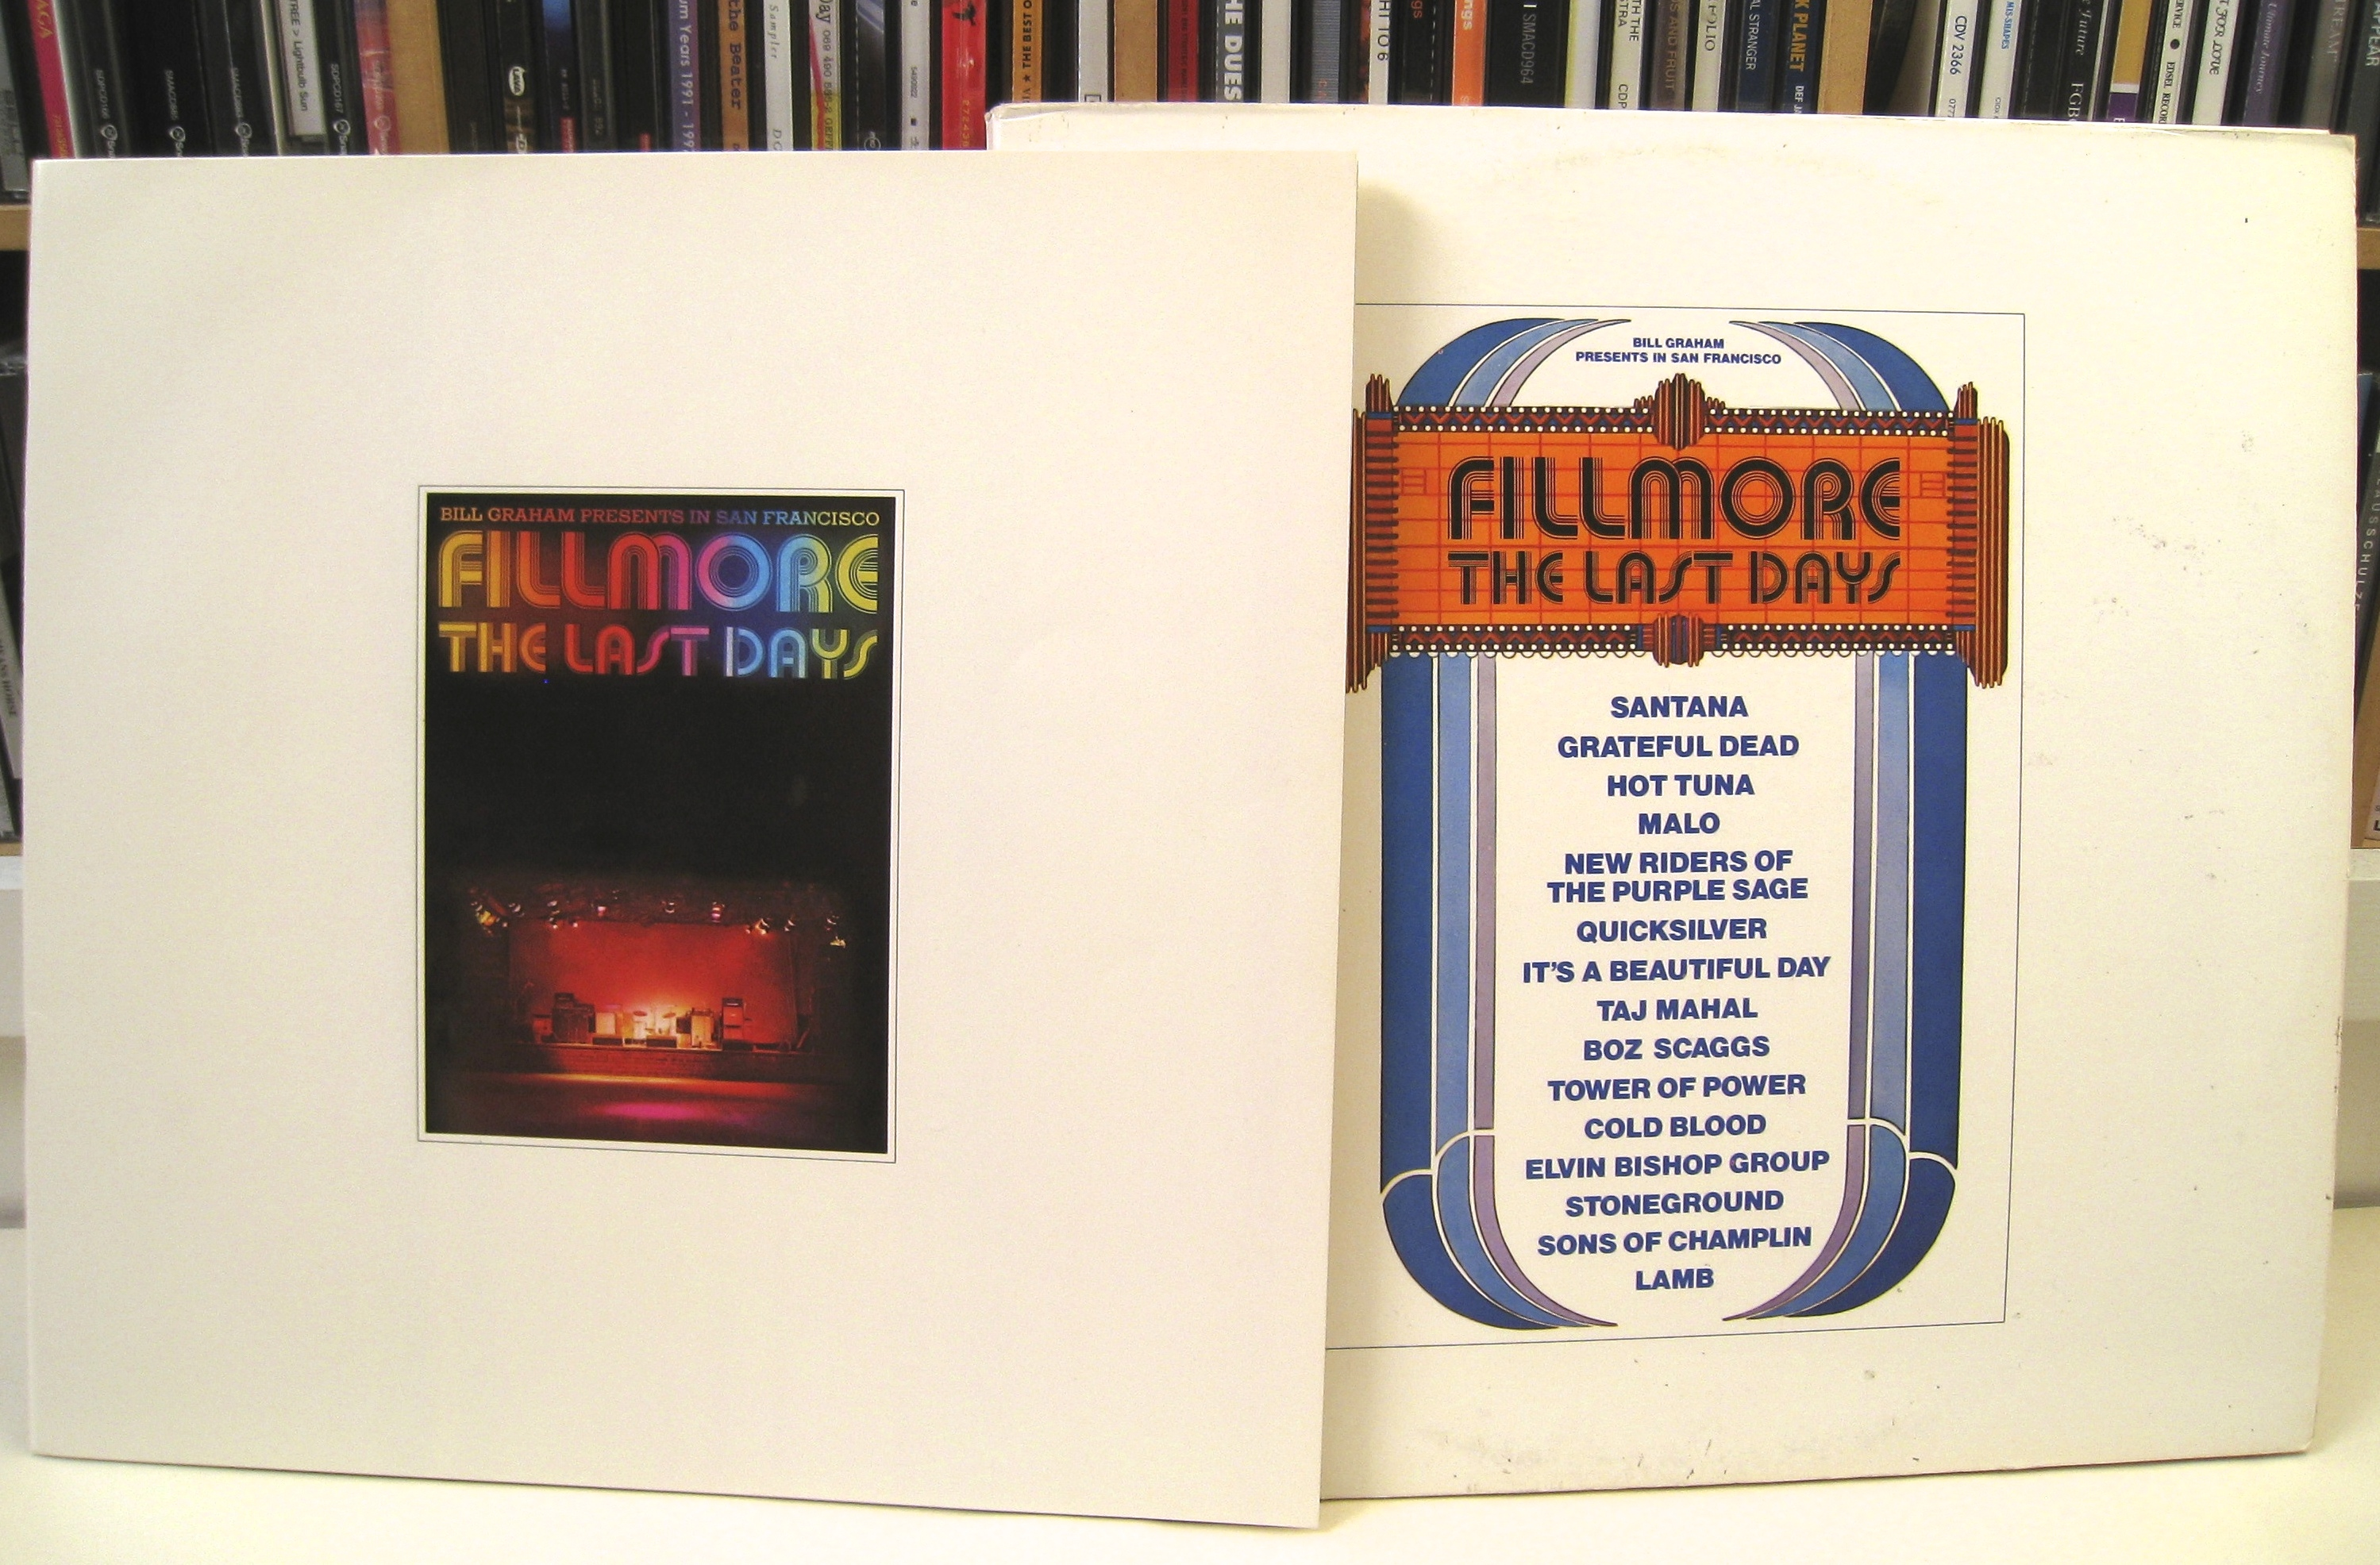 There have been other 'in concert' triples featuring a variety of artists, including Last Days of the Fillmore (June 1972) and Sunbury 1973 – The Great ...